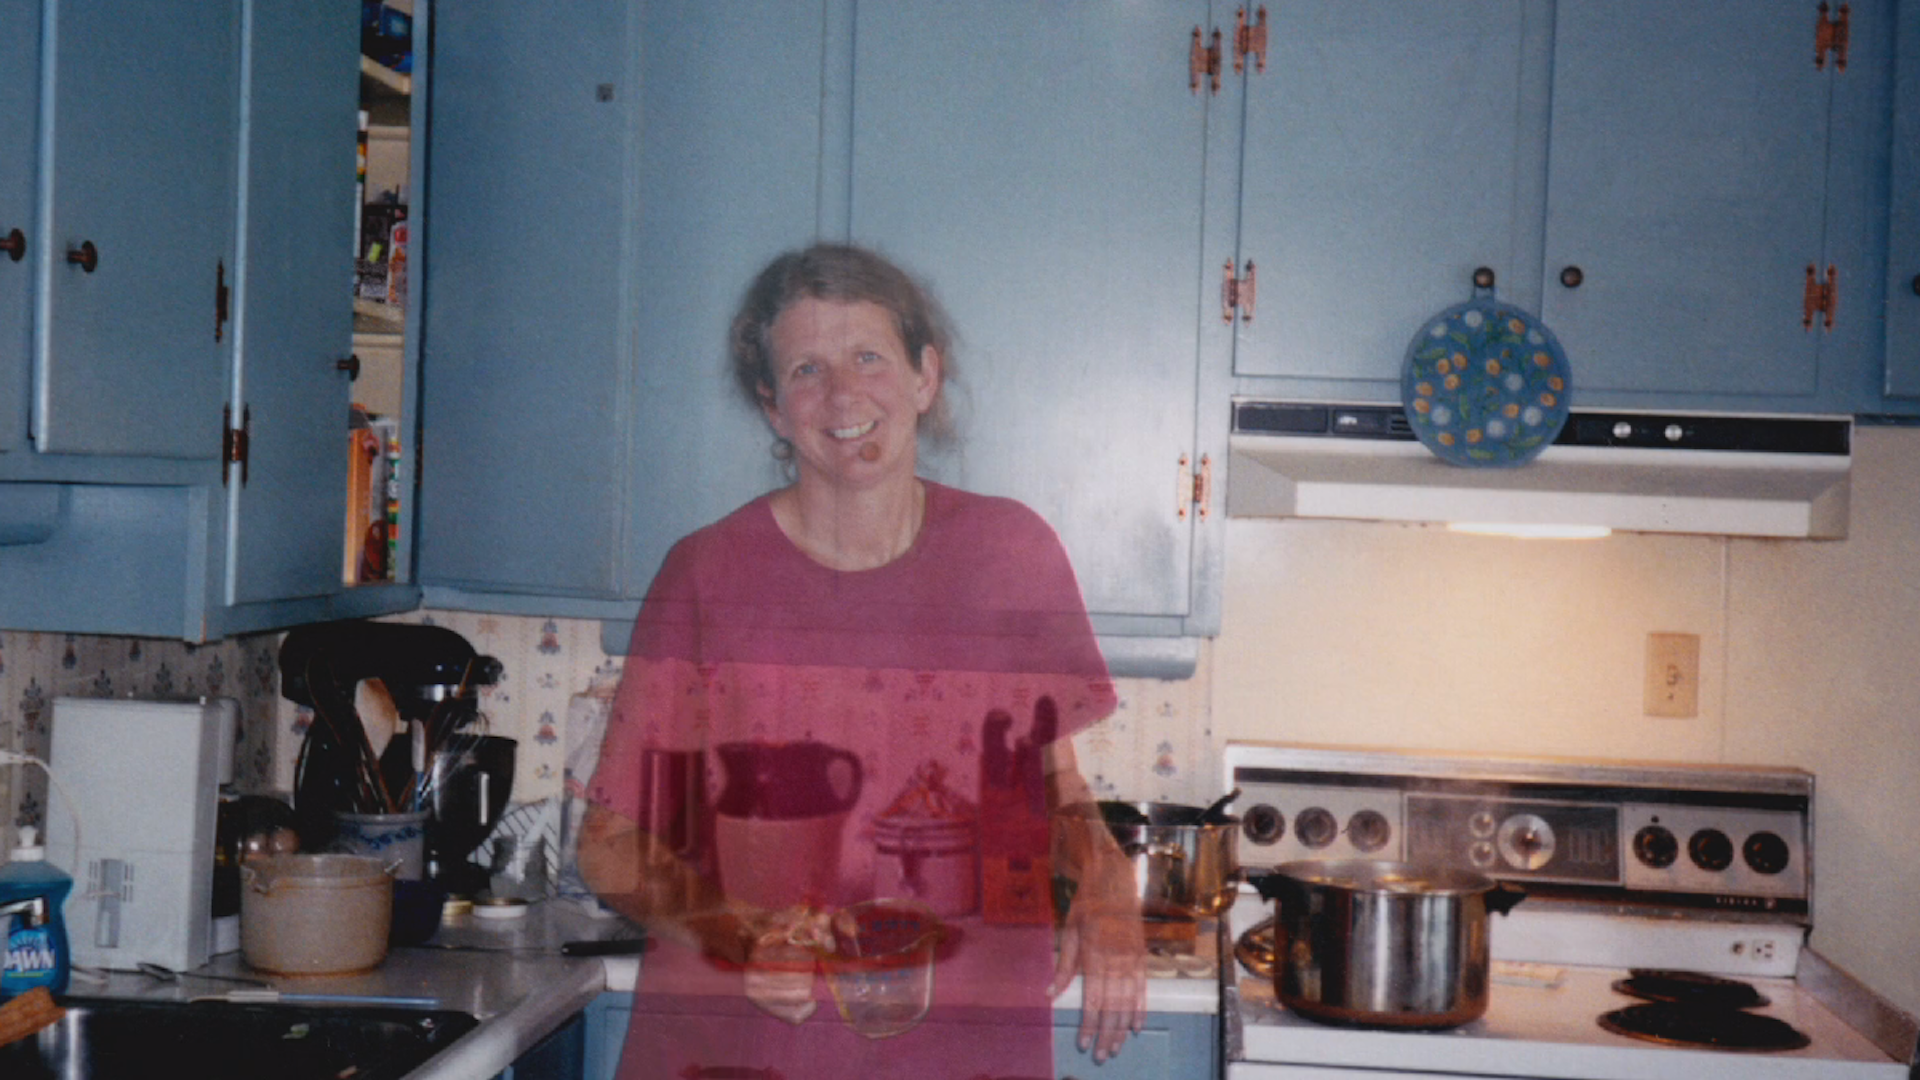 A mentally ill woman's harrowing final days: 'God Knows Where I Am'